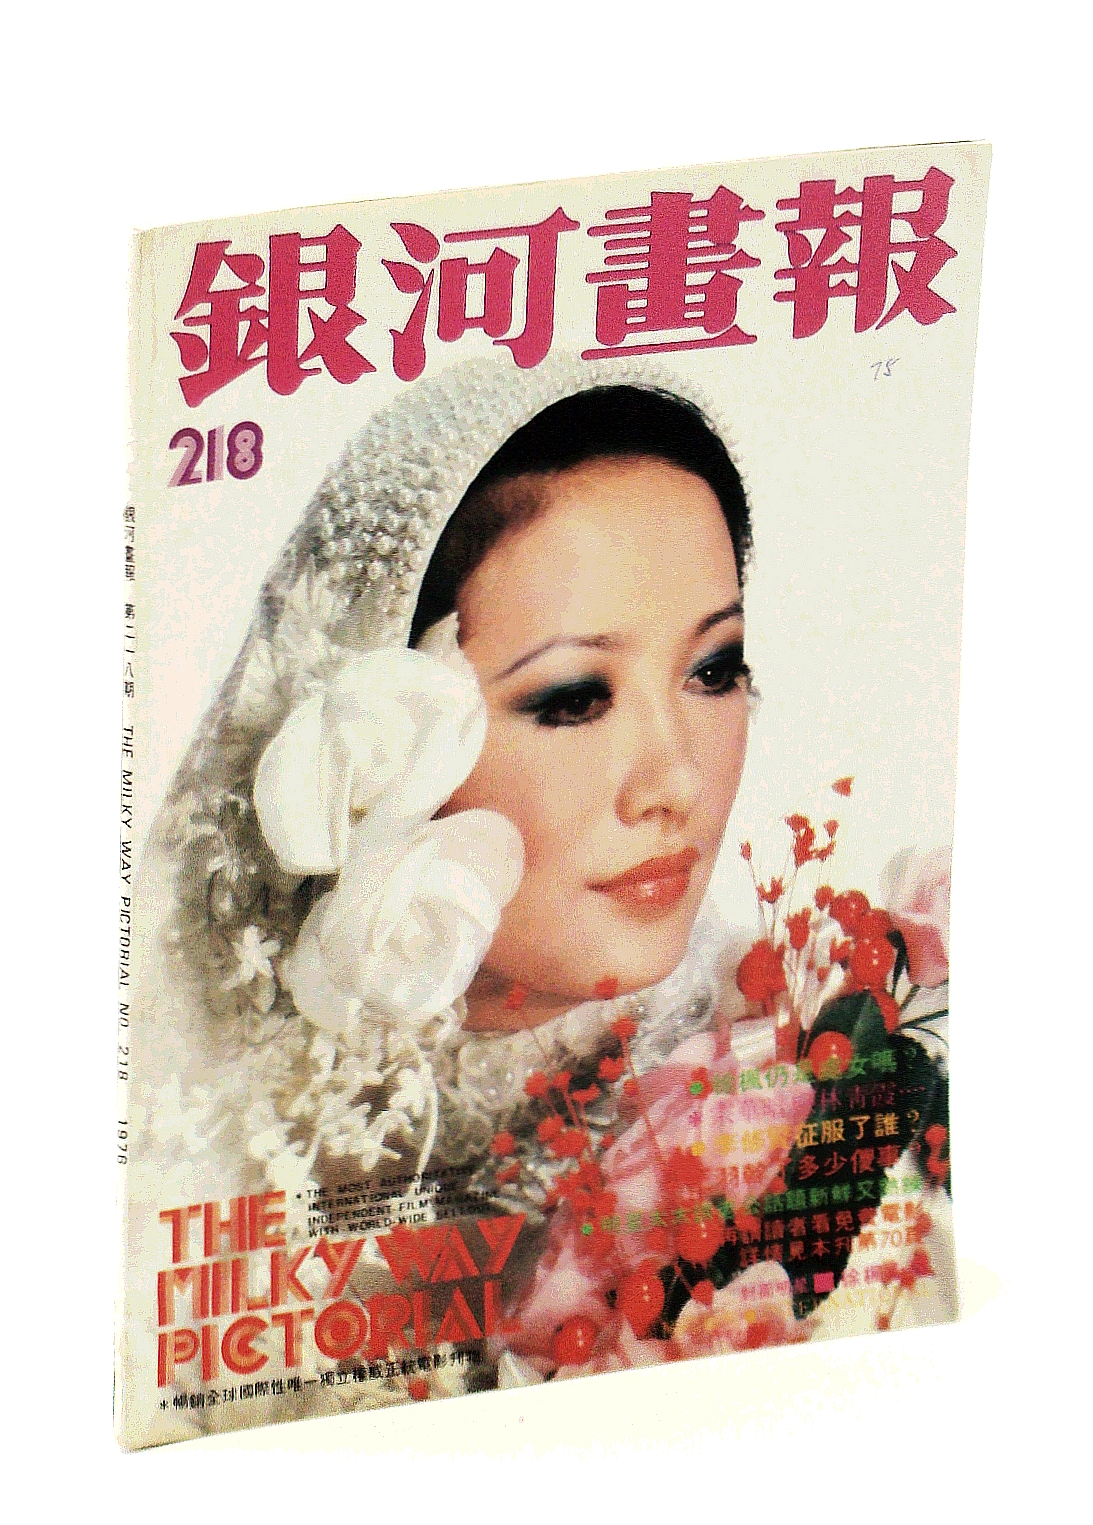 Image for The Milky Way Pictorial [Magazine] No. 218, 1976 - Hsu Chi Chang Cover Photo